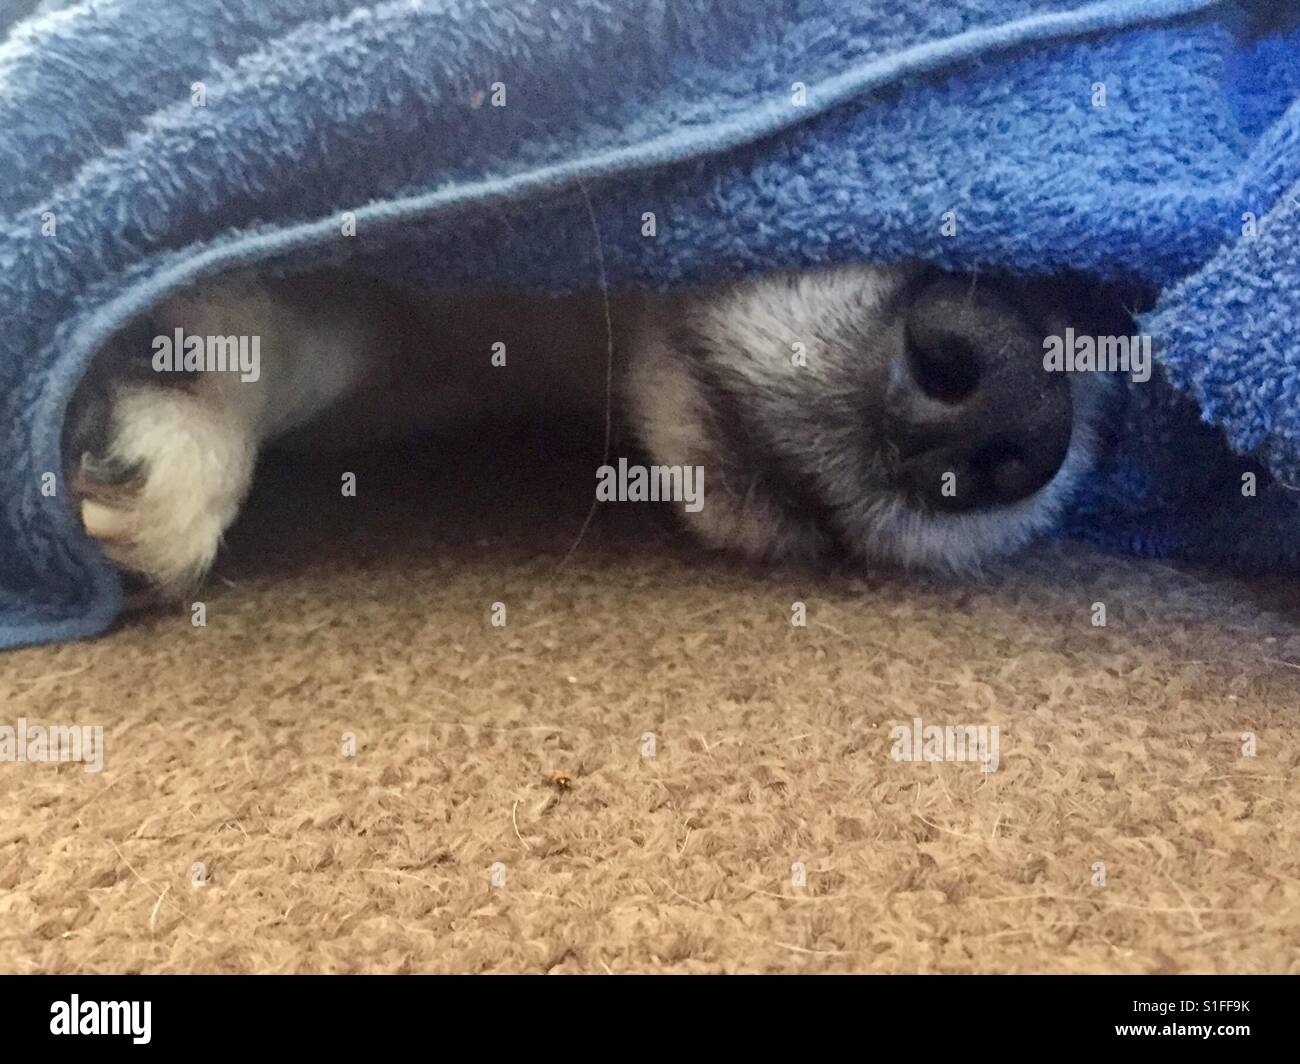 Sleeping Dog's nose peeping out under a blue towel lying on a beige carpet - Stock Image